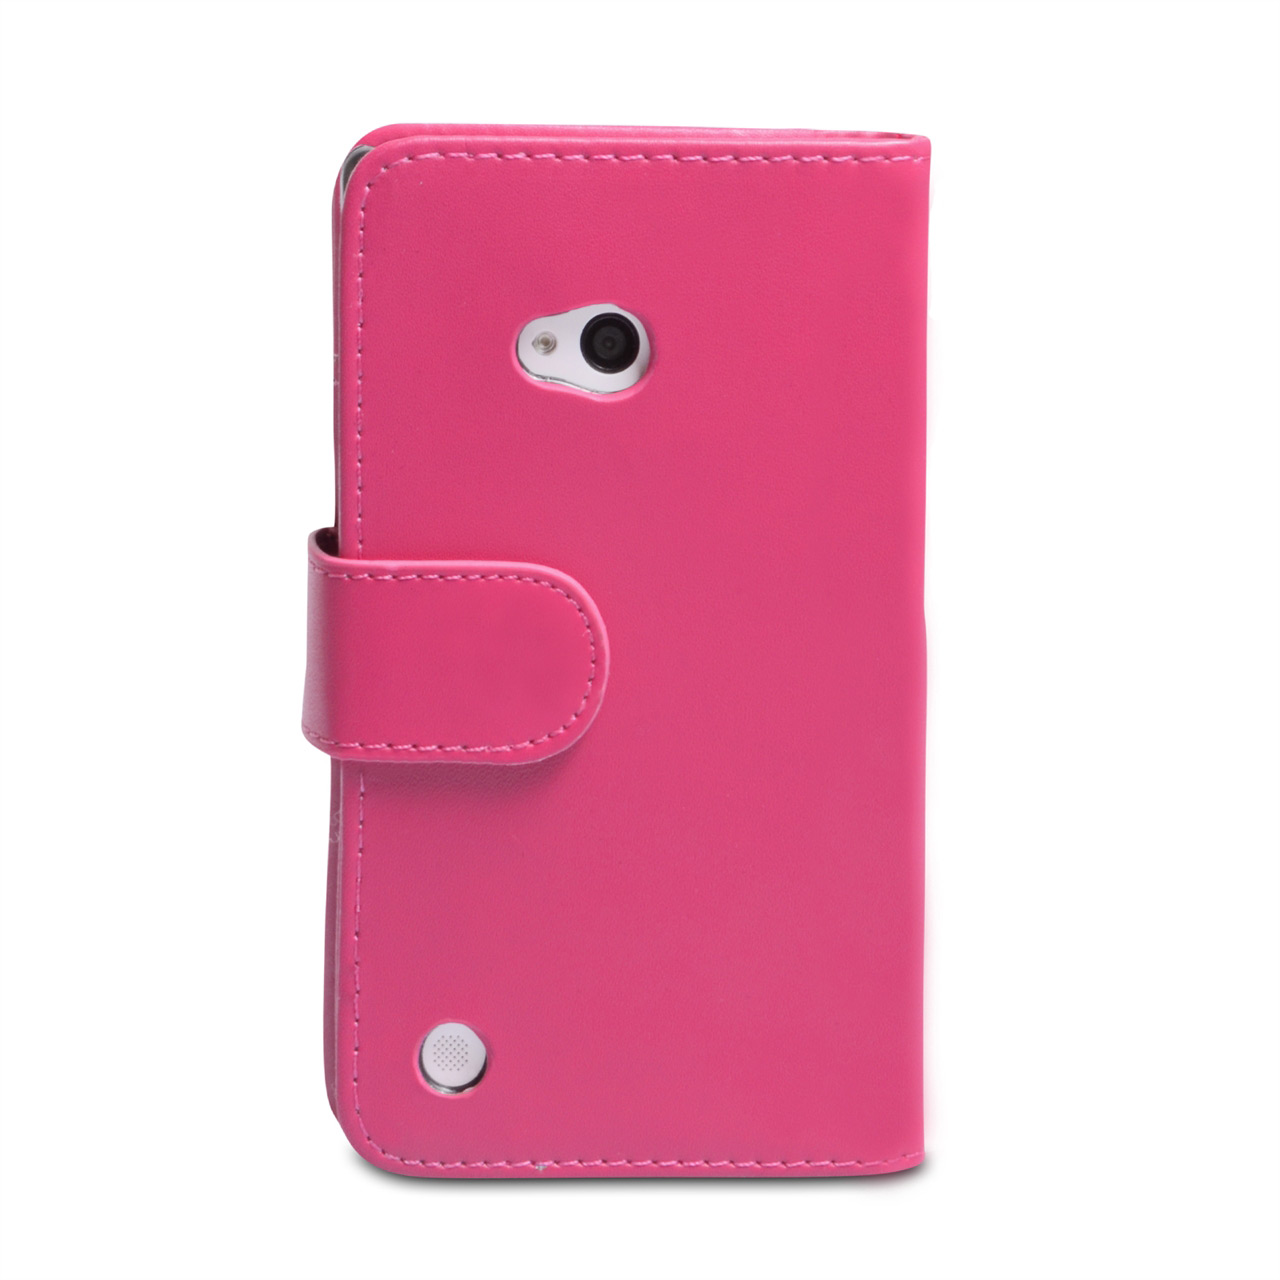 YouSave Nokia Lumia 720 Leather Effect Wallet Case - Hot Pink